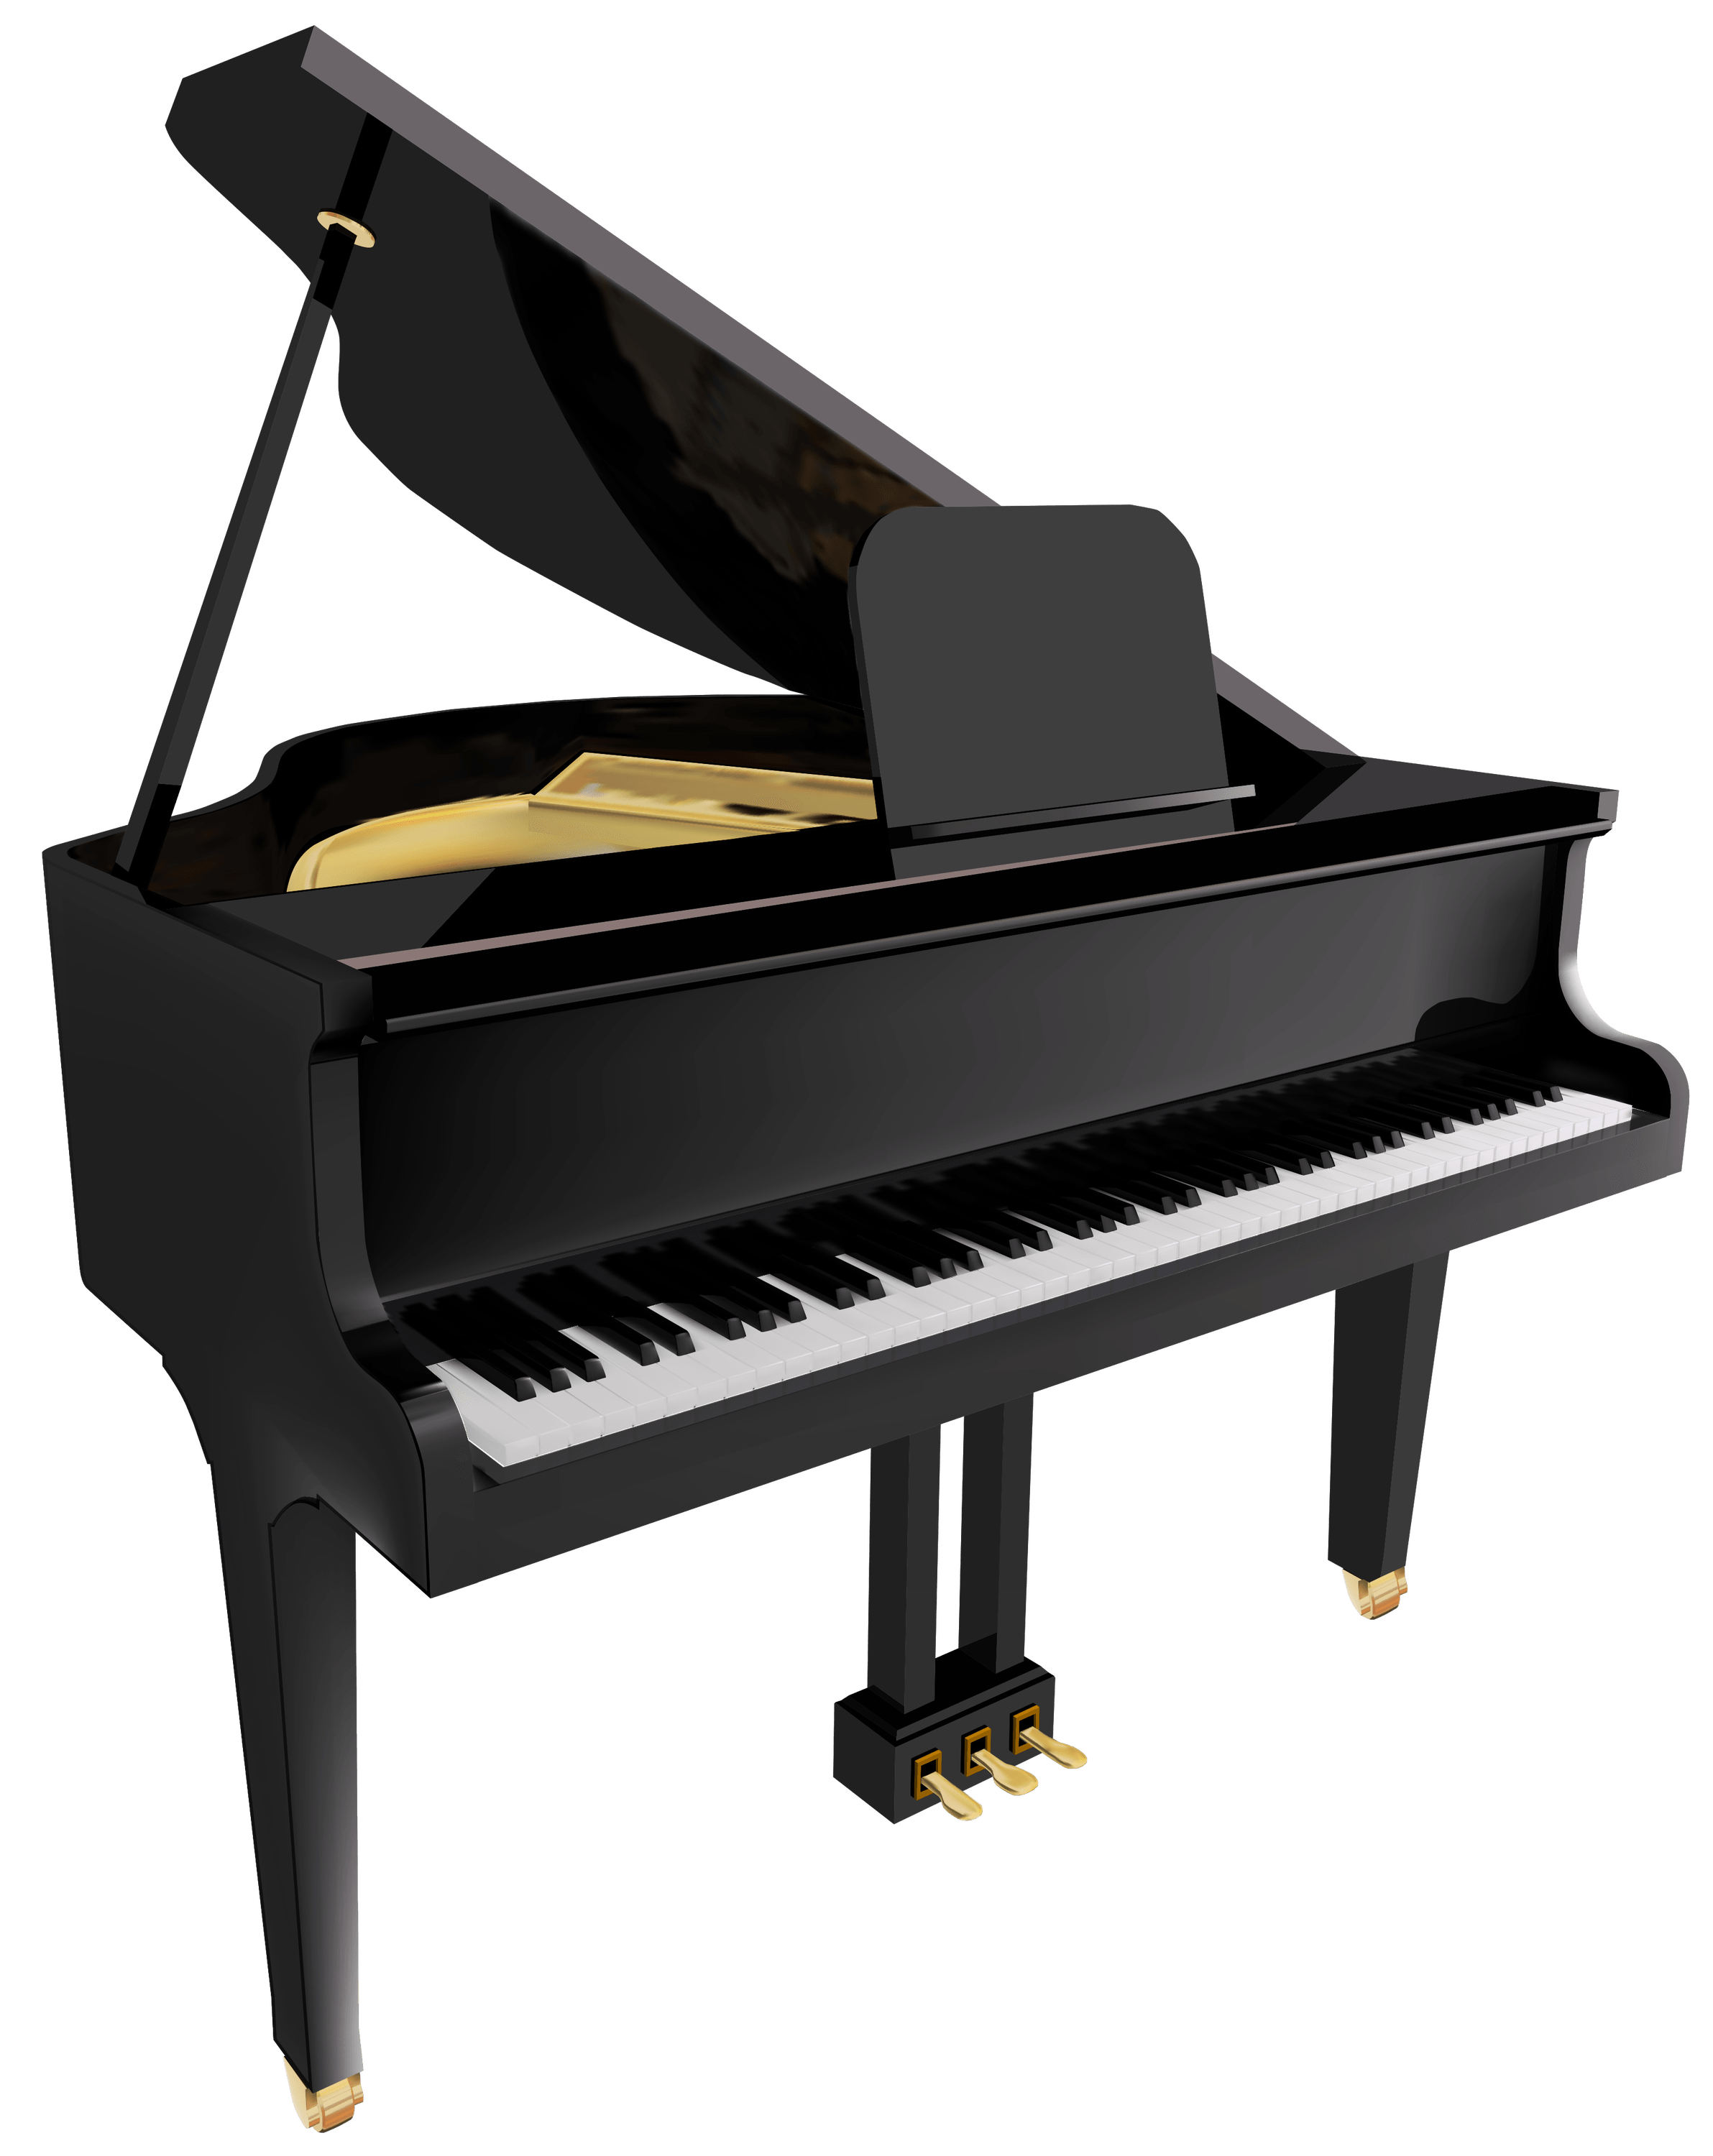 Piano clipart images image library stock Piano Clipart transparent PNG - StickPNG image library stock